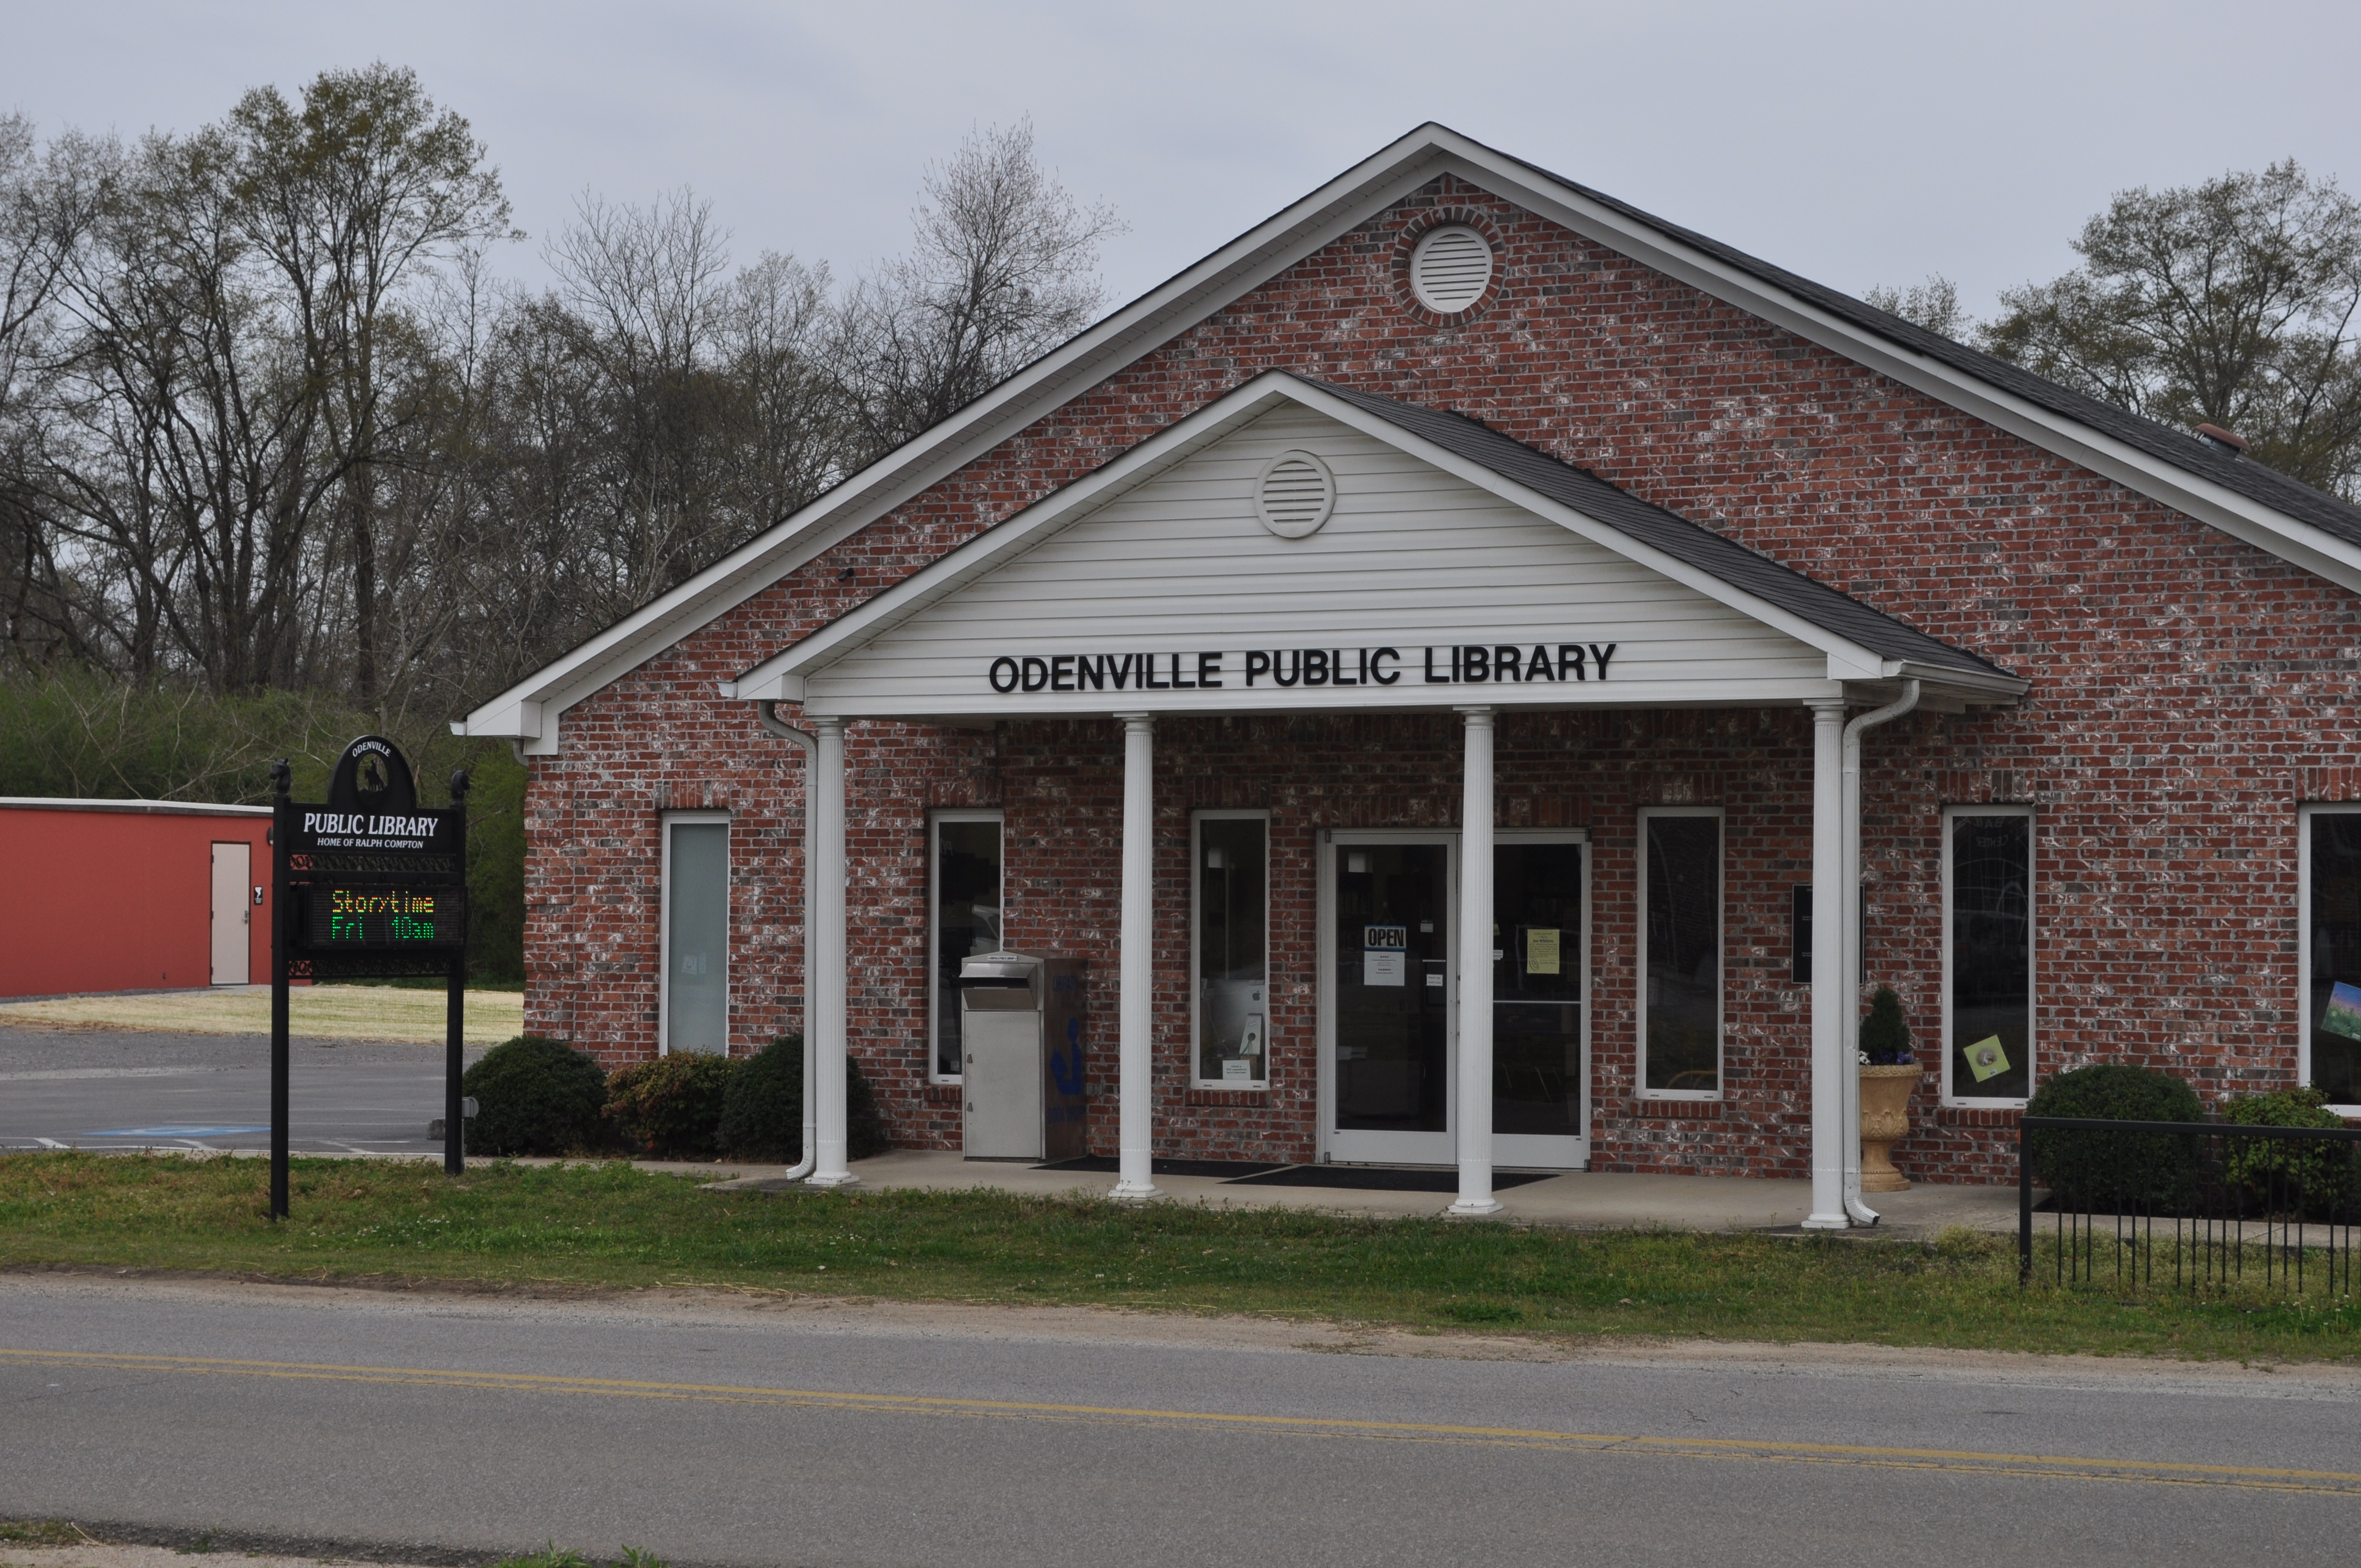 Odenville Public Library